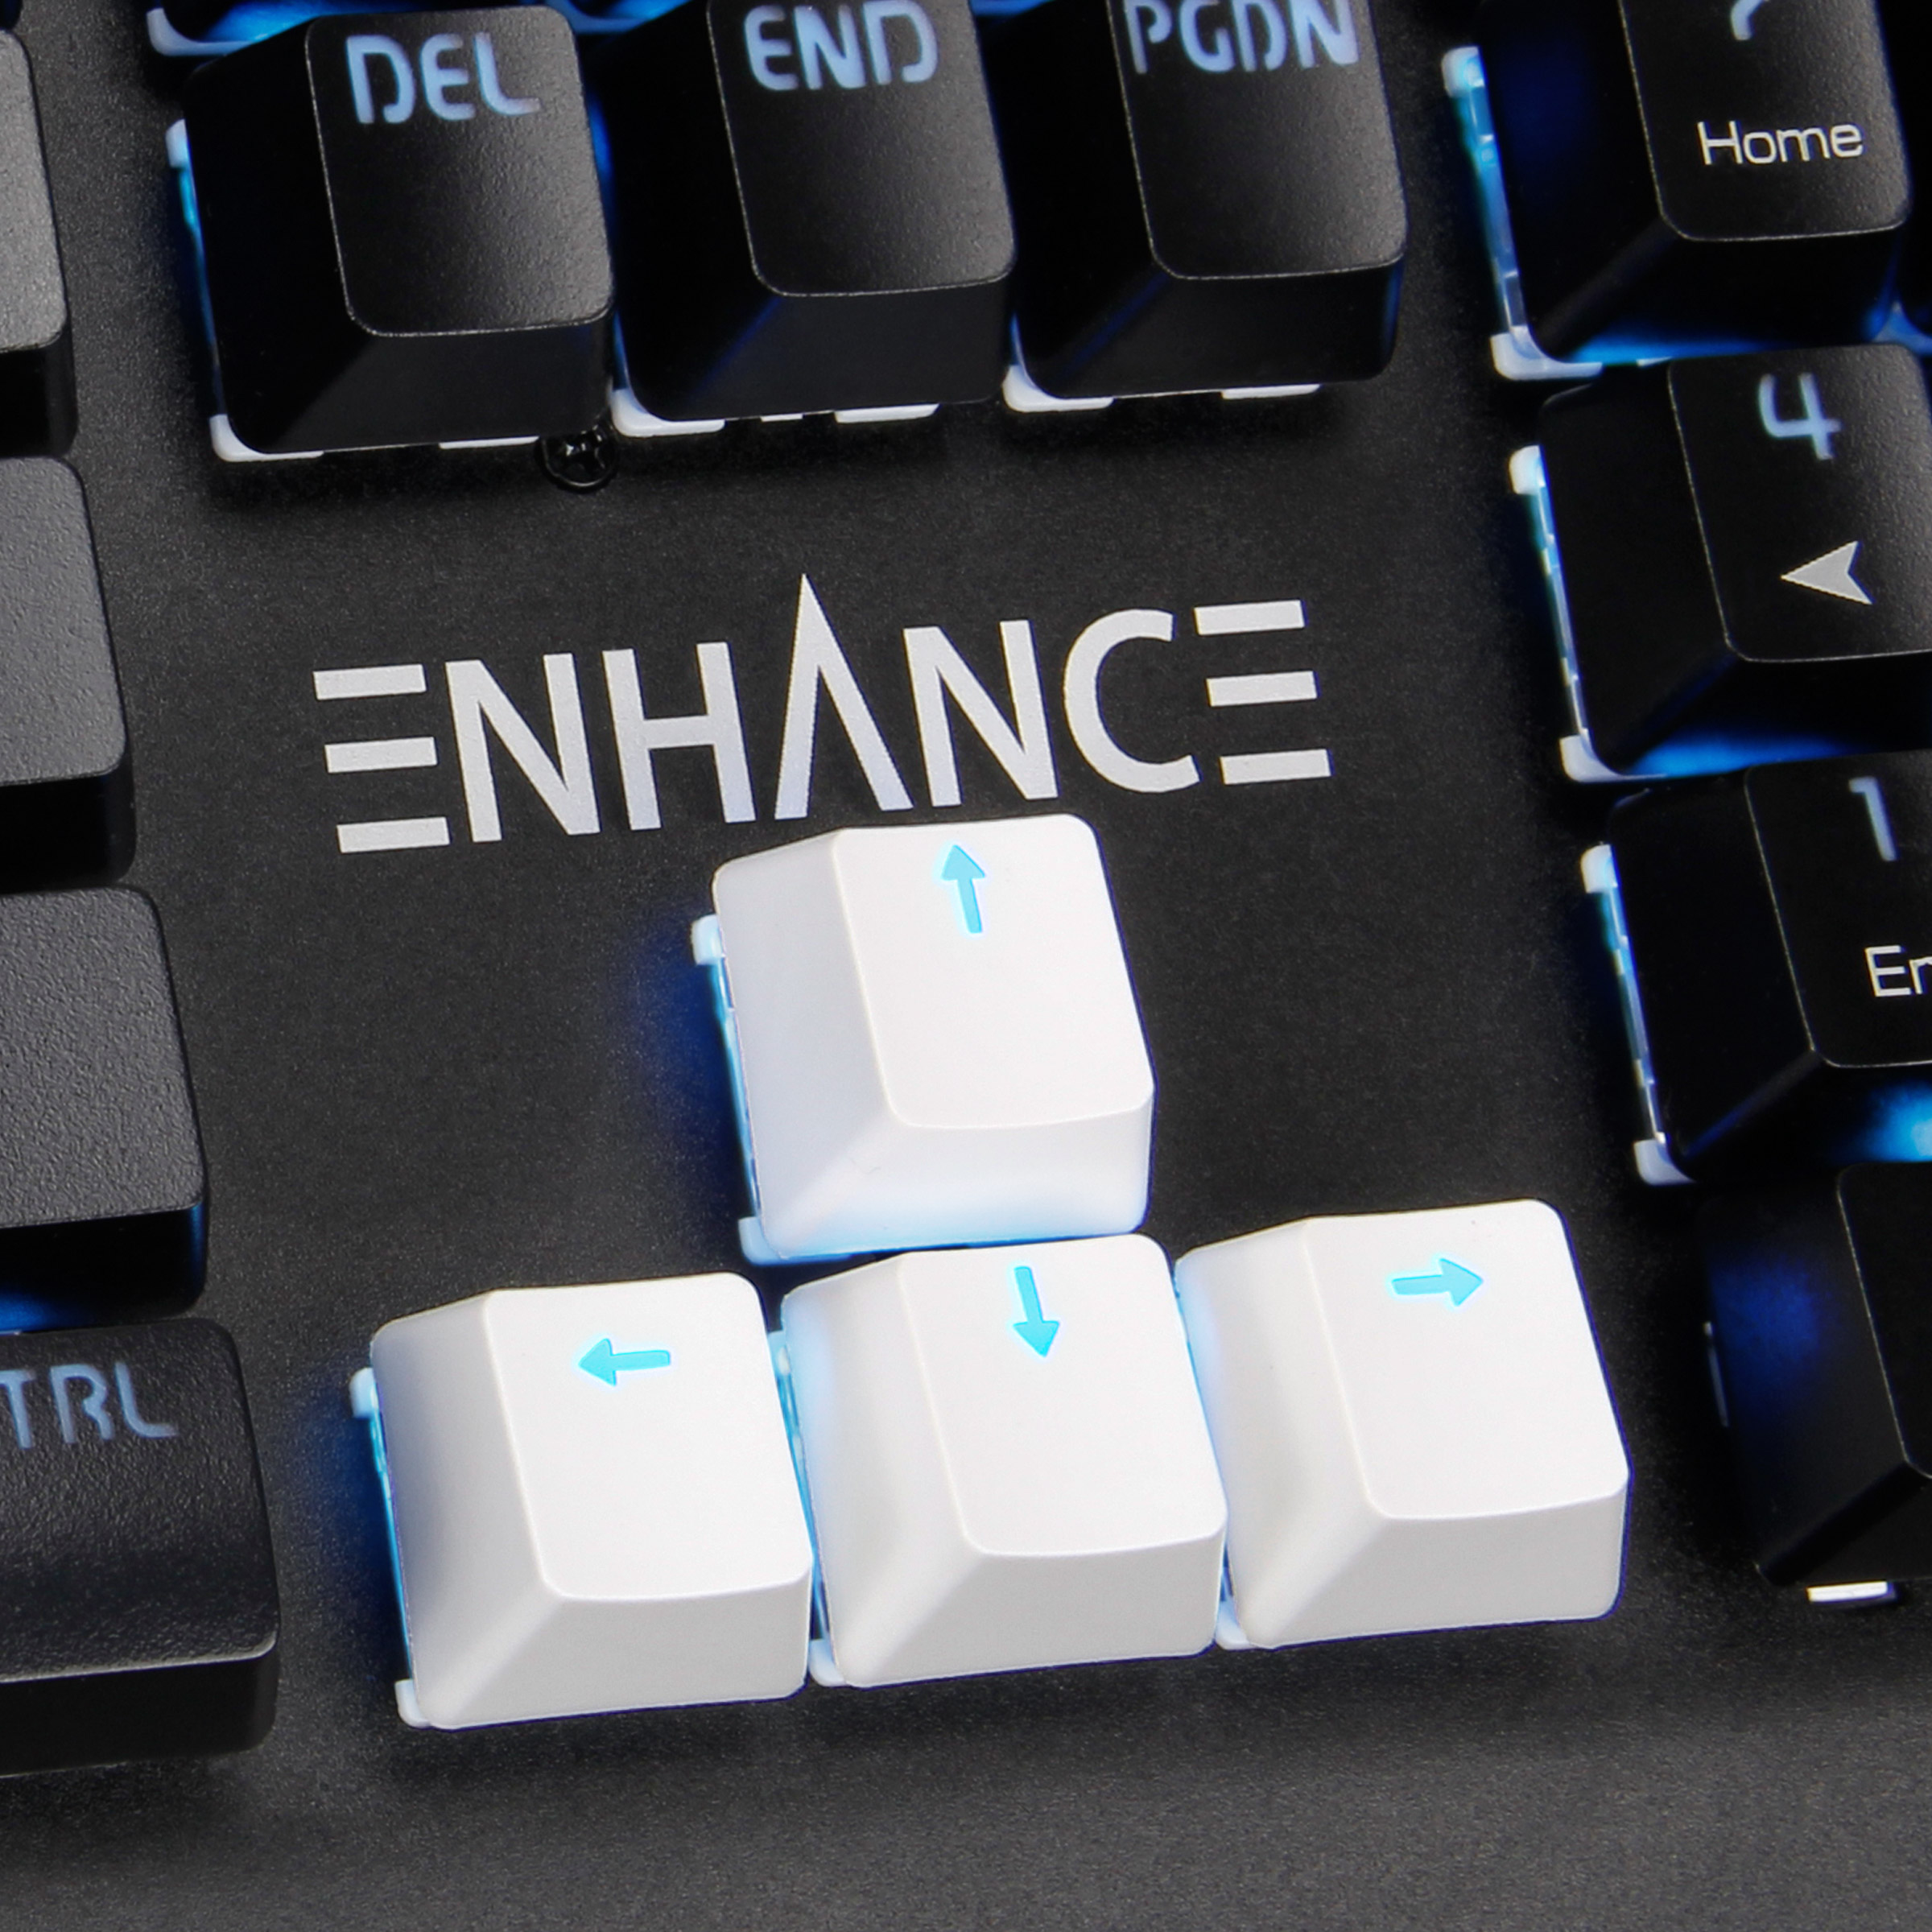 61d8c37f9f0 ENHANCE Gaming Keyboard Keycaps Set FPS Upgrade Kit - 9 PBT Clear  Translucent Backlight Key Caps for Cherry MX Mechanical Keyboards -  Includes Keycap Puller ...